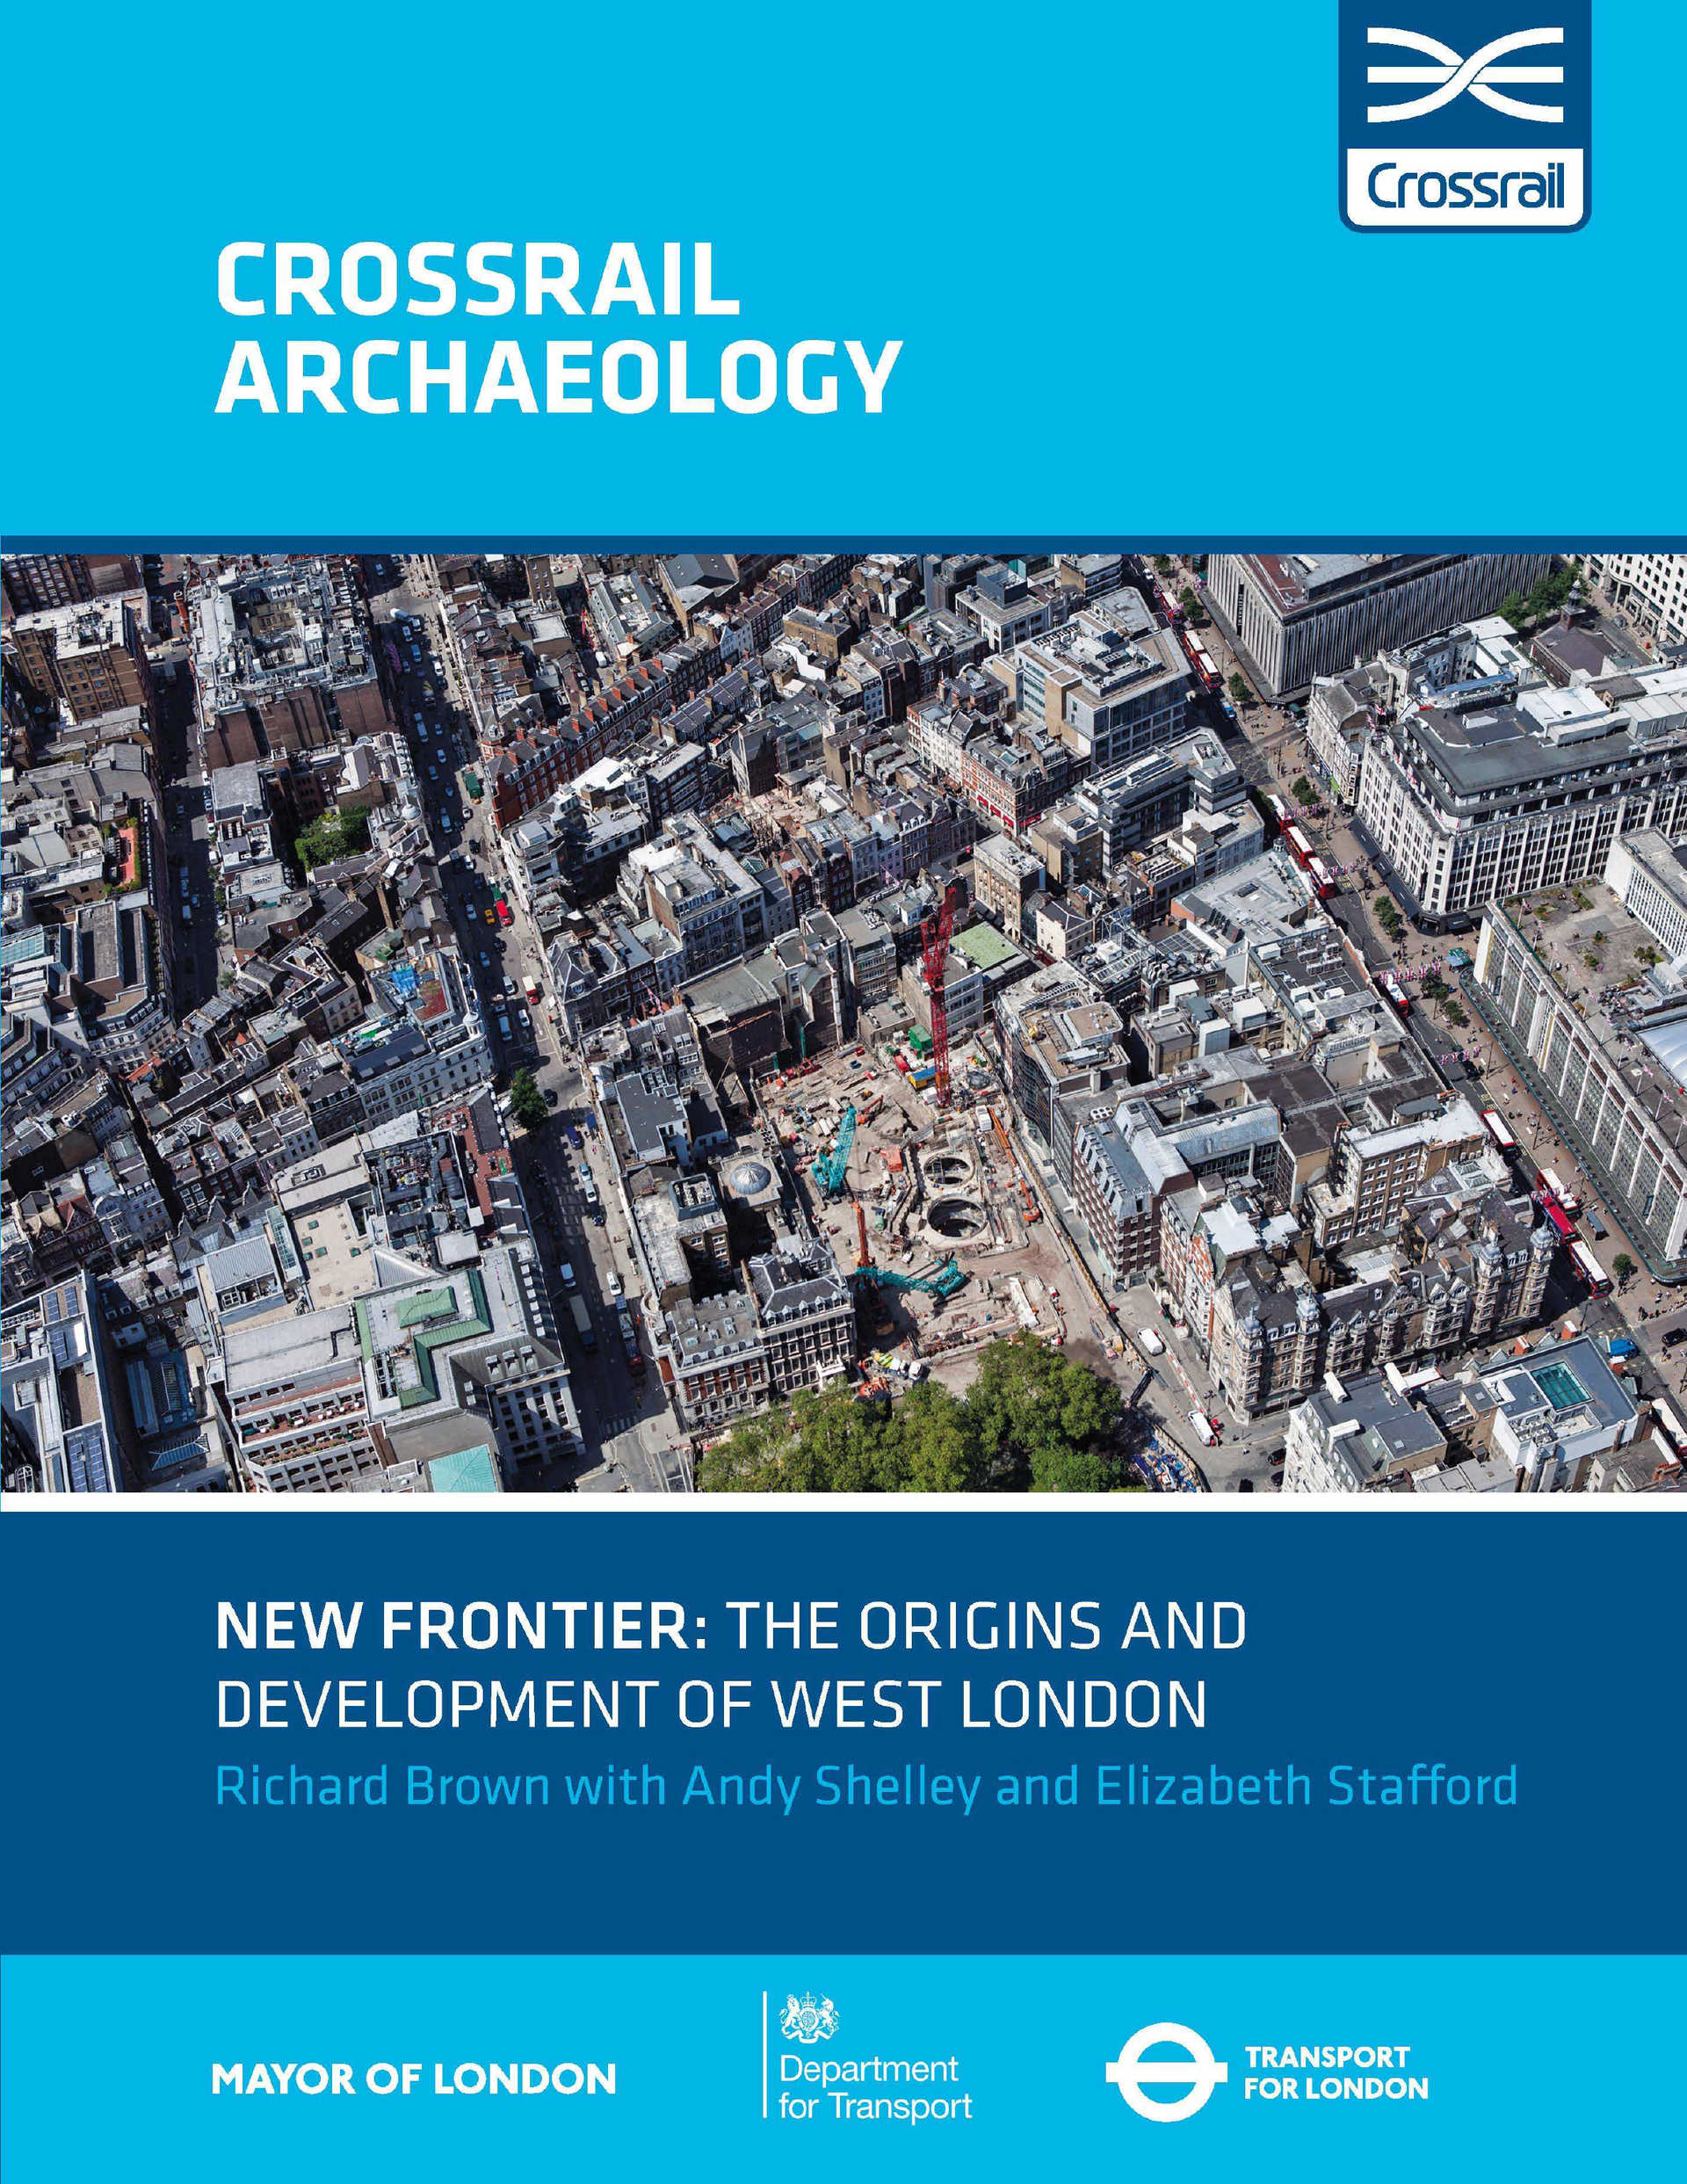 New Frontier: The origins and development of west London_257621